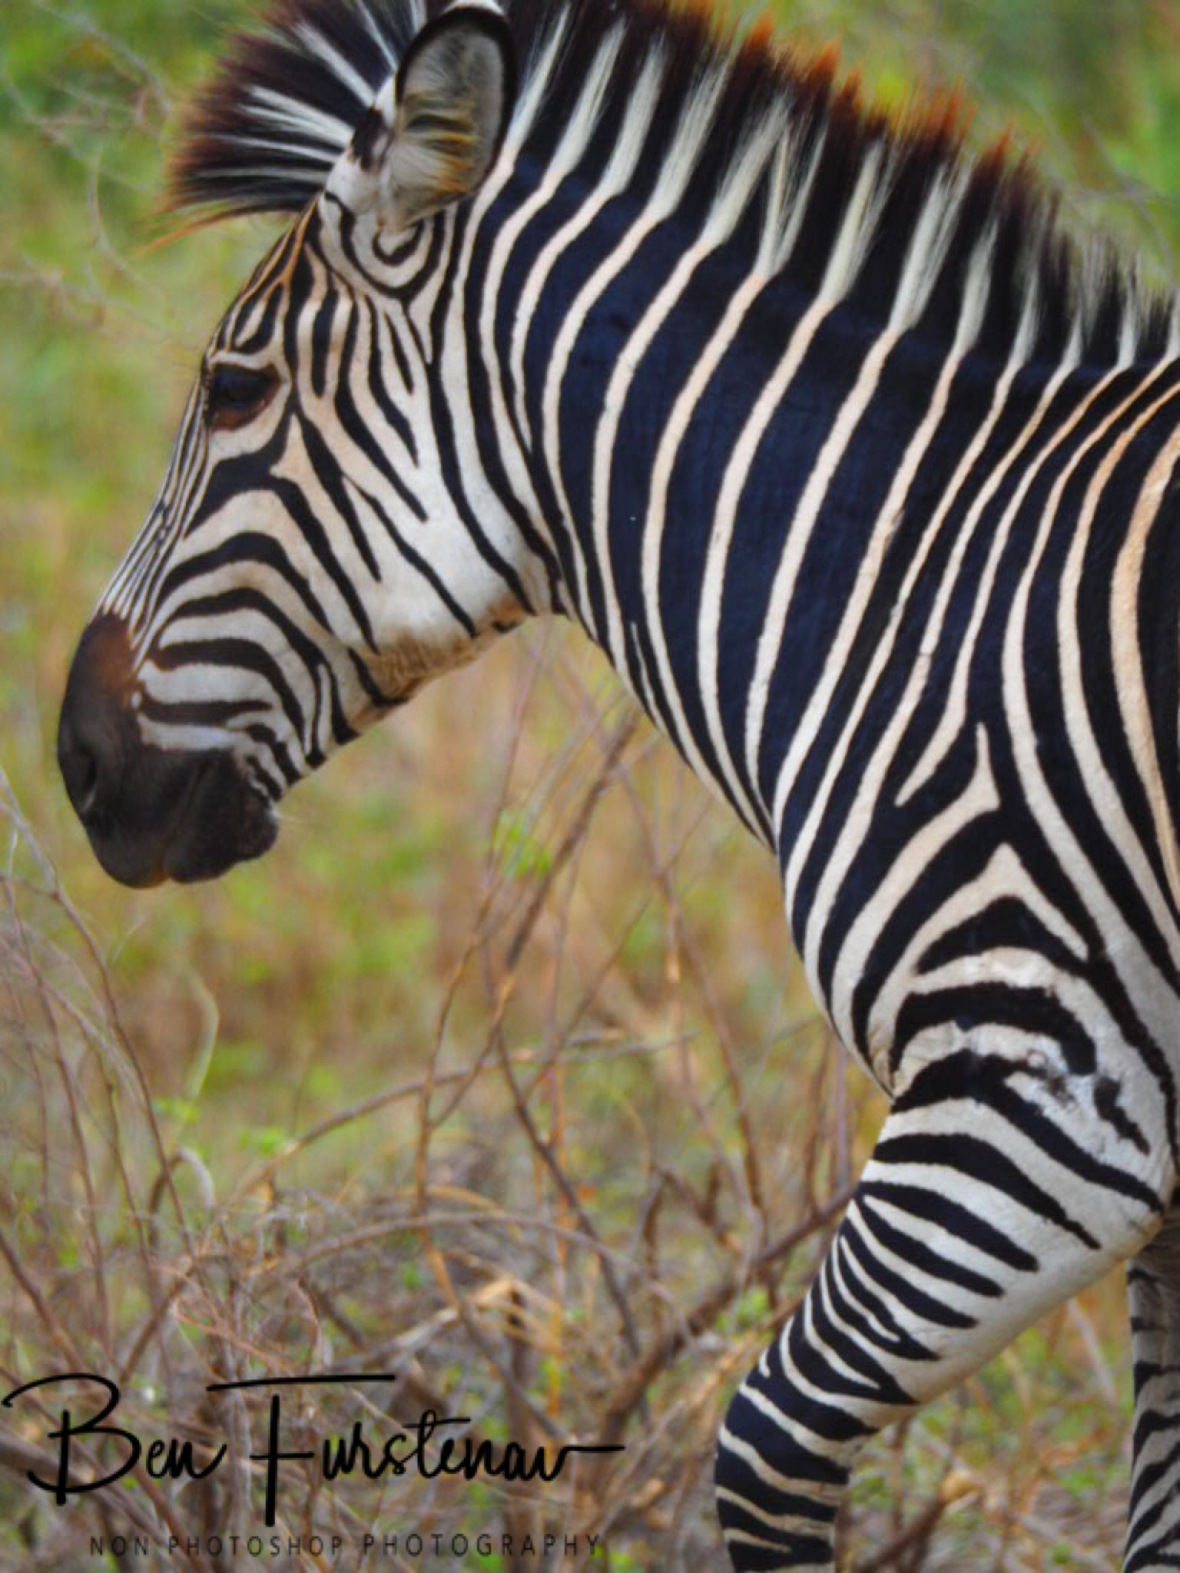 Thin stripes look almost painted, South Luangwa National Park, Zambia